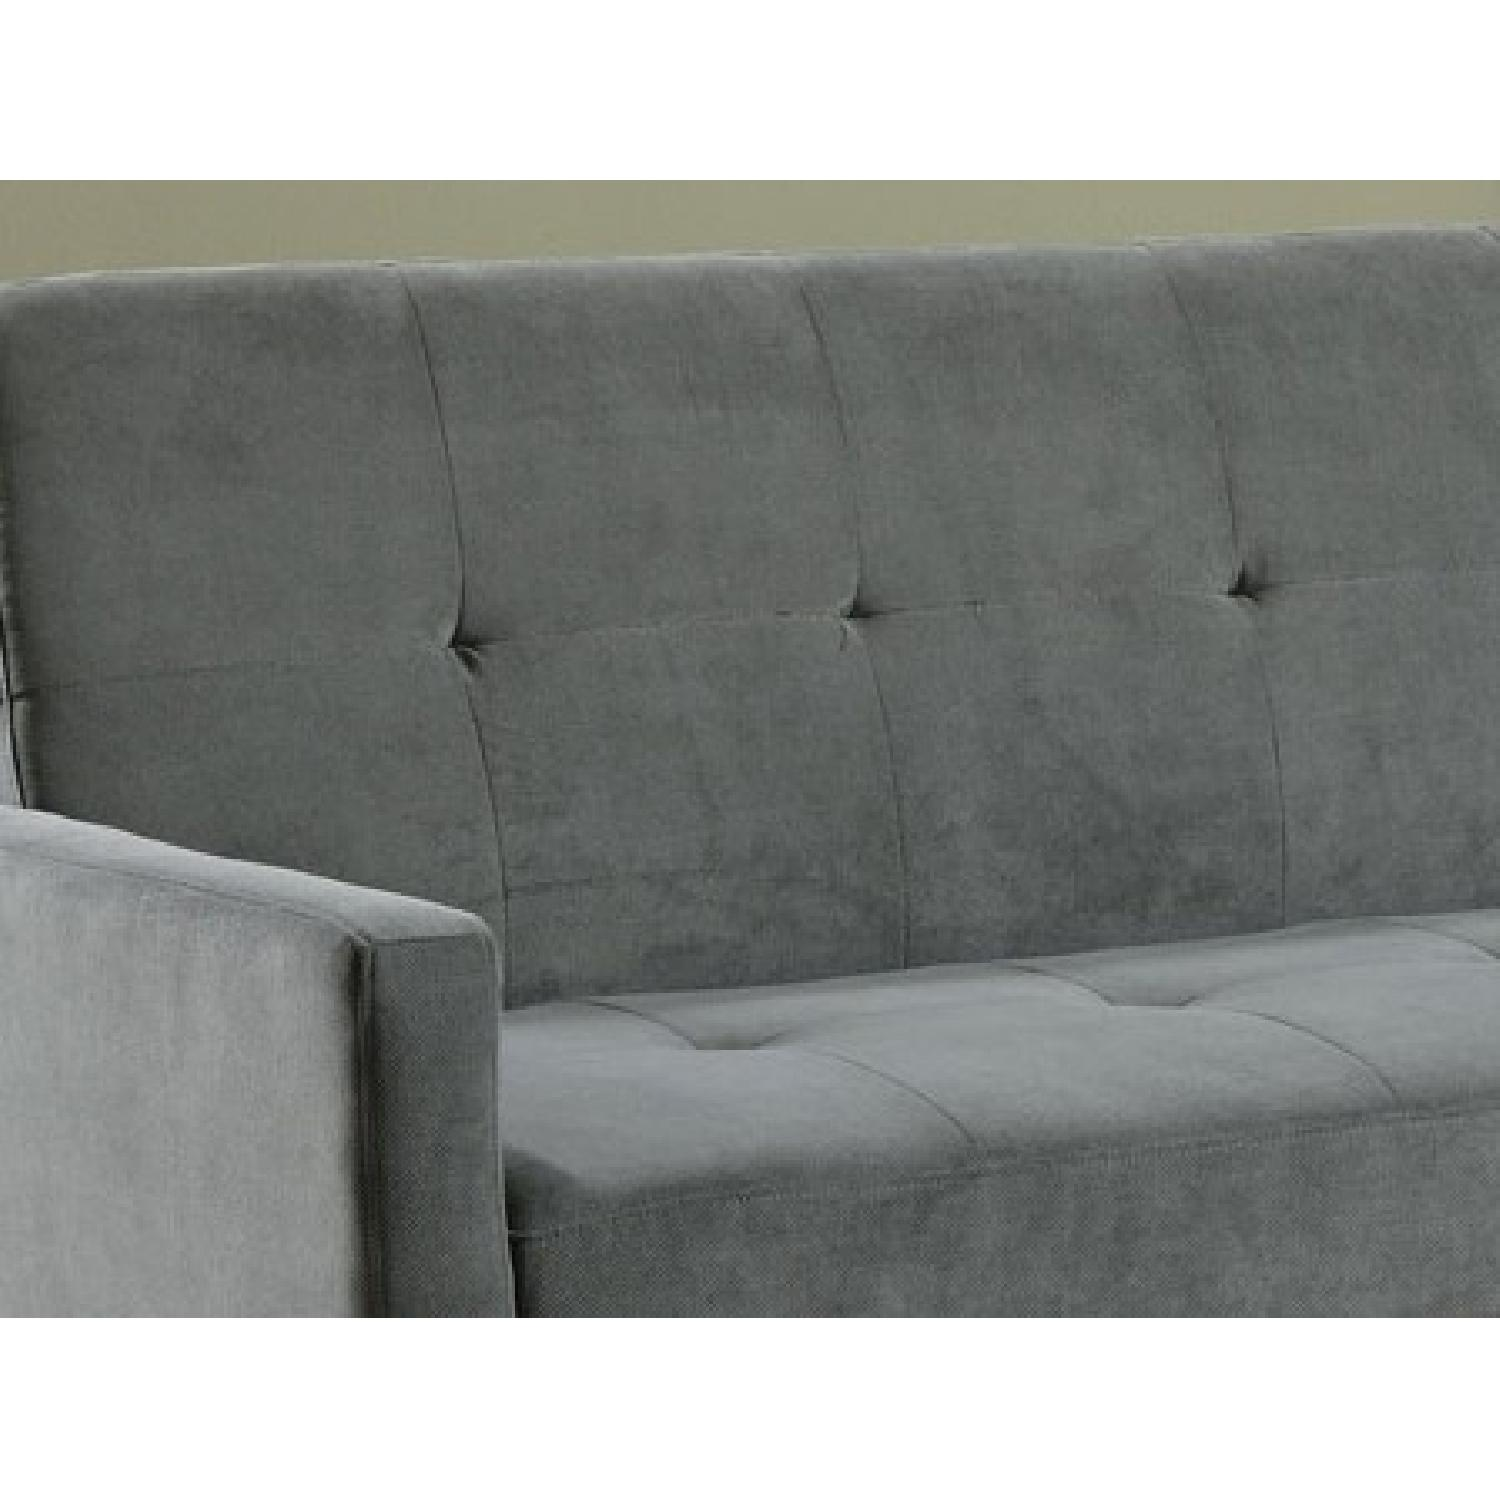 Convertible Sofa in Soft Blue-Gray Microfiber w/ Tufted Buttons - image-3